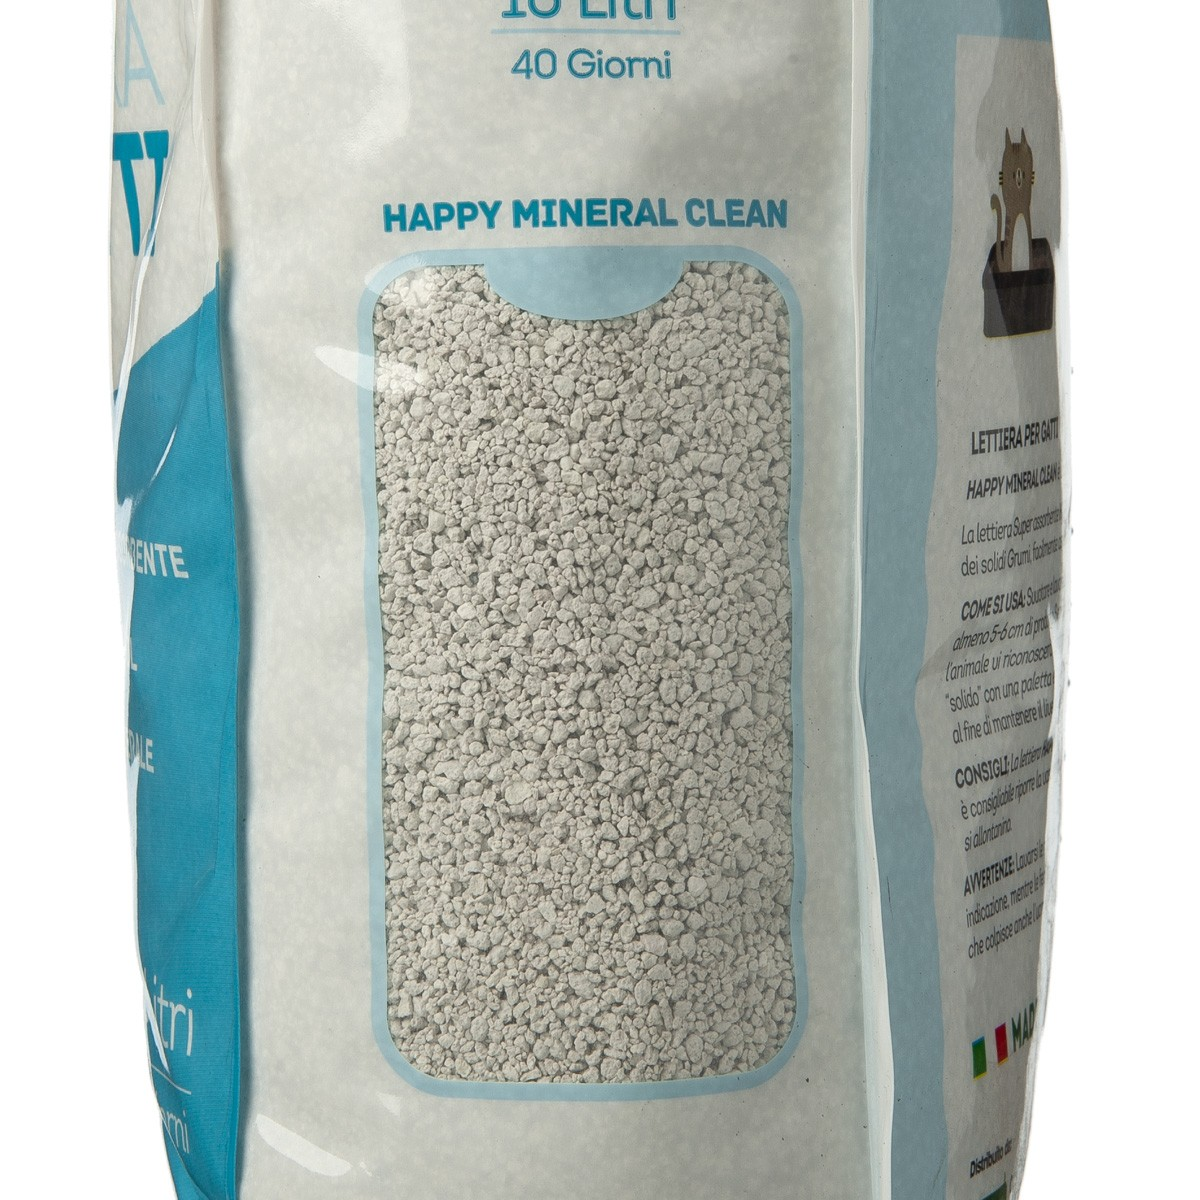 Happy Mineral Clean Clorex Lettiera 10 L